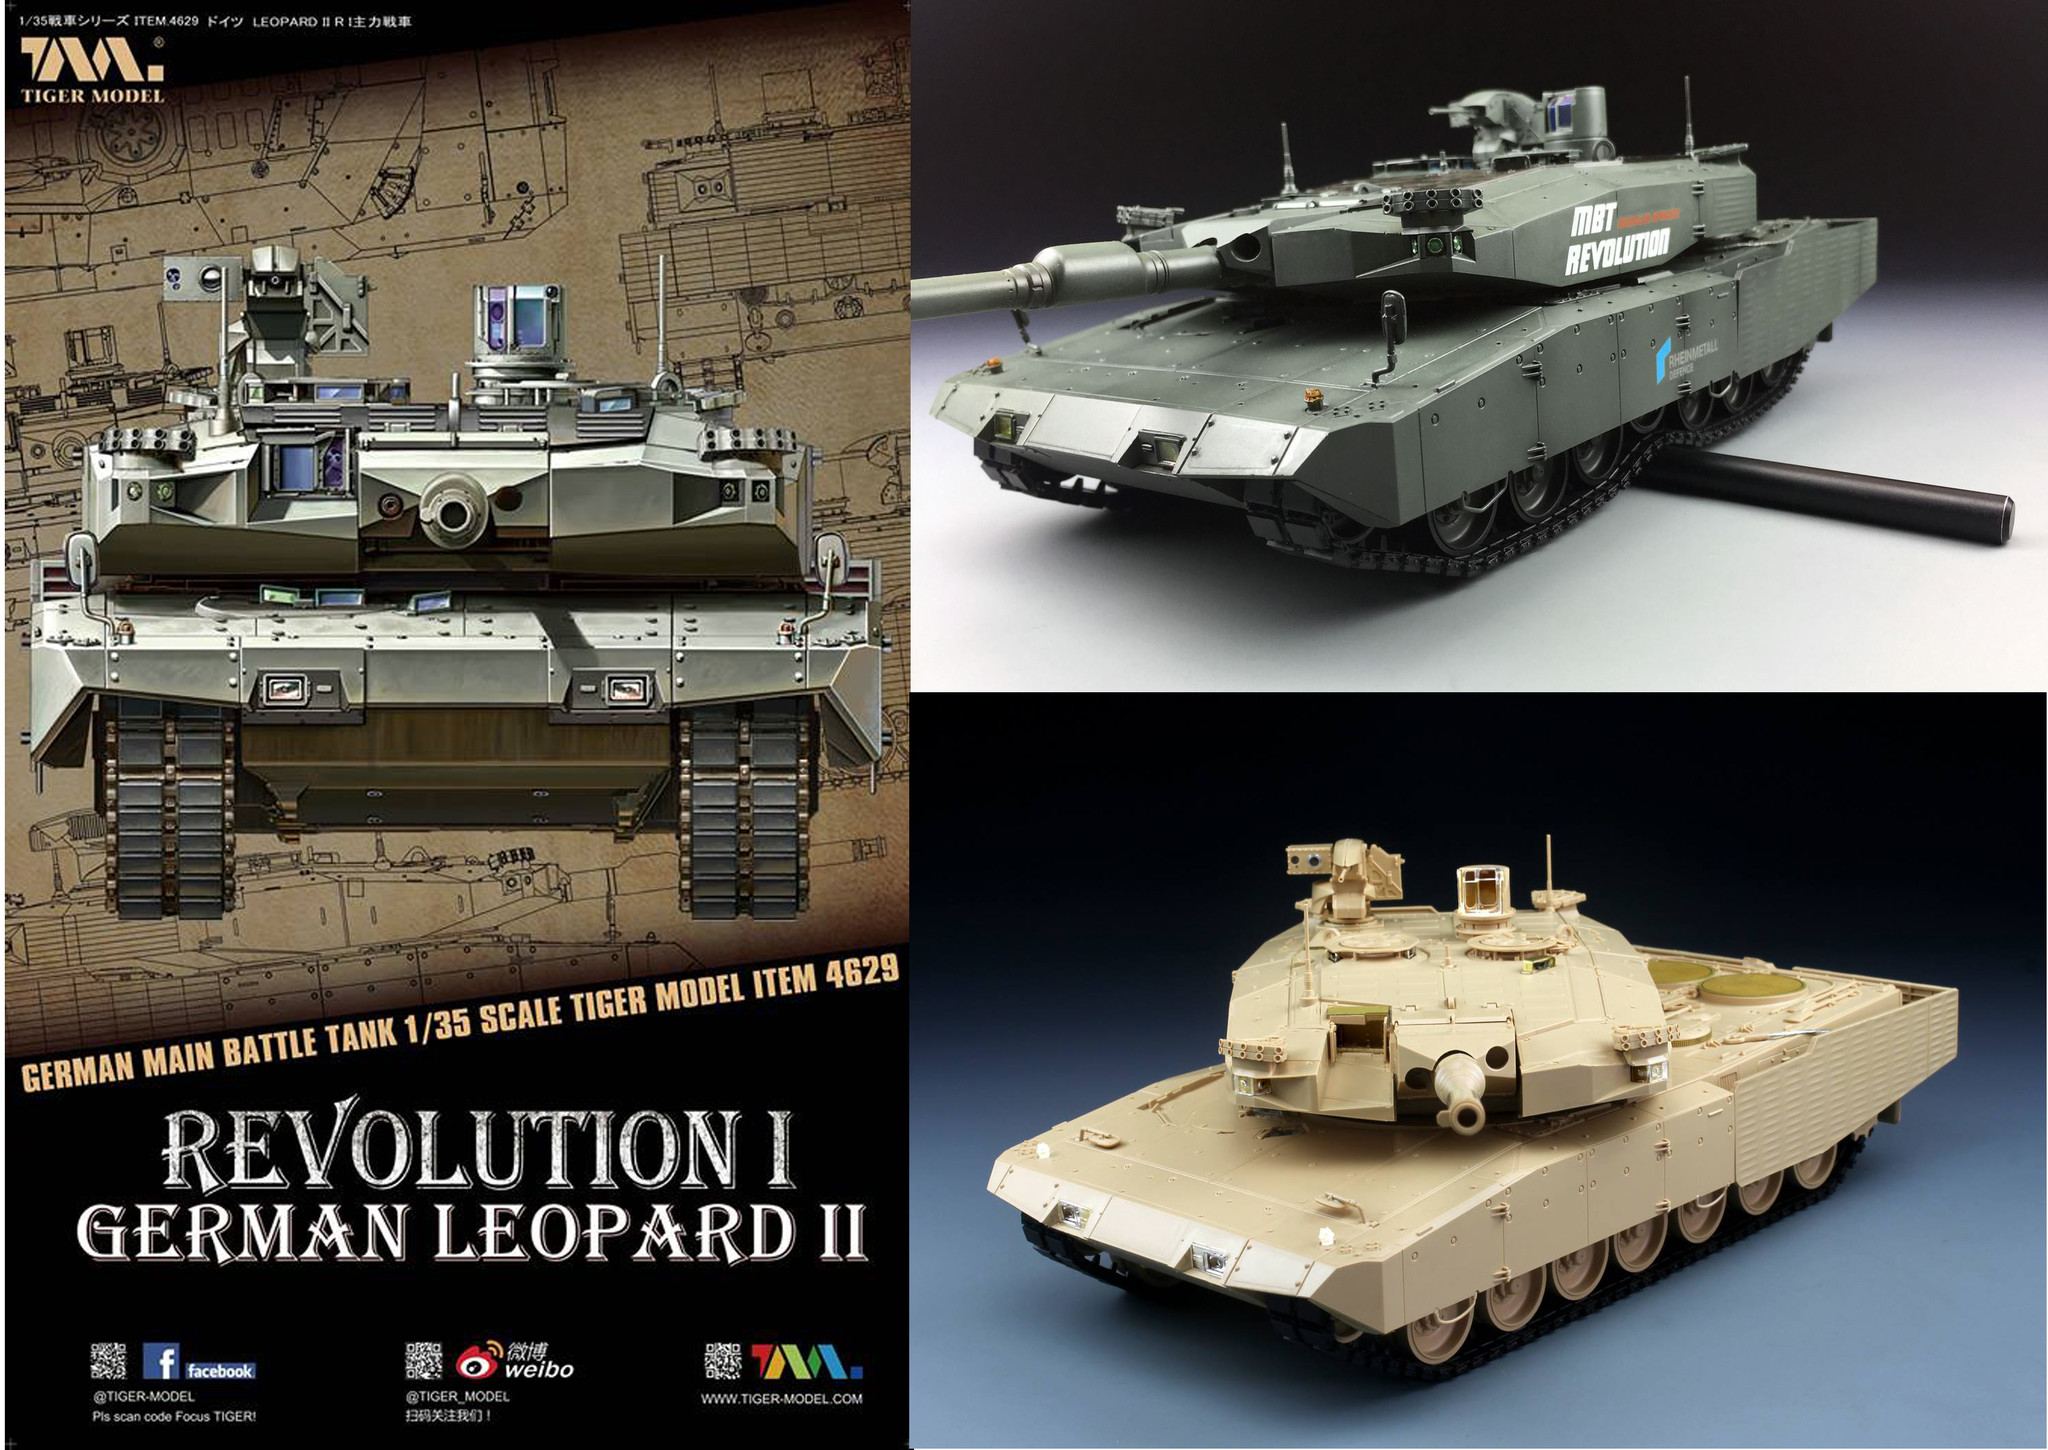 Tiger Model Leopard II Revolution I Mbt - Tiger Model - Scale 1/35 - TIGE4629